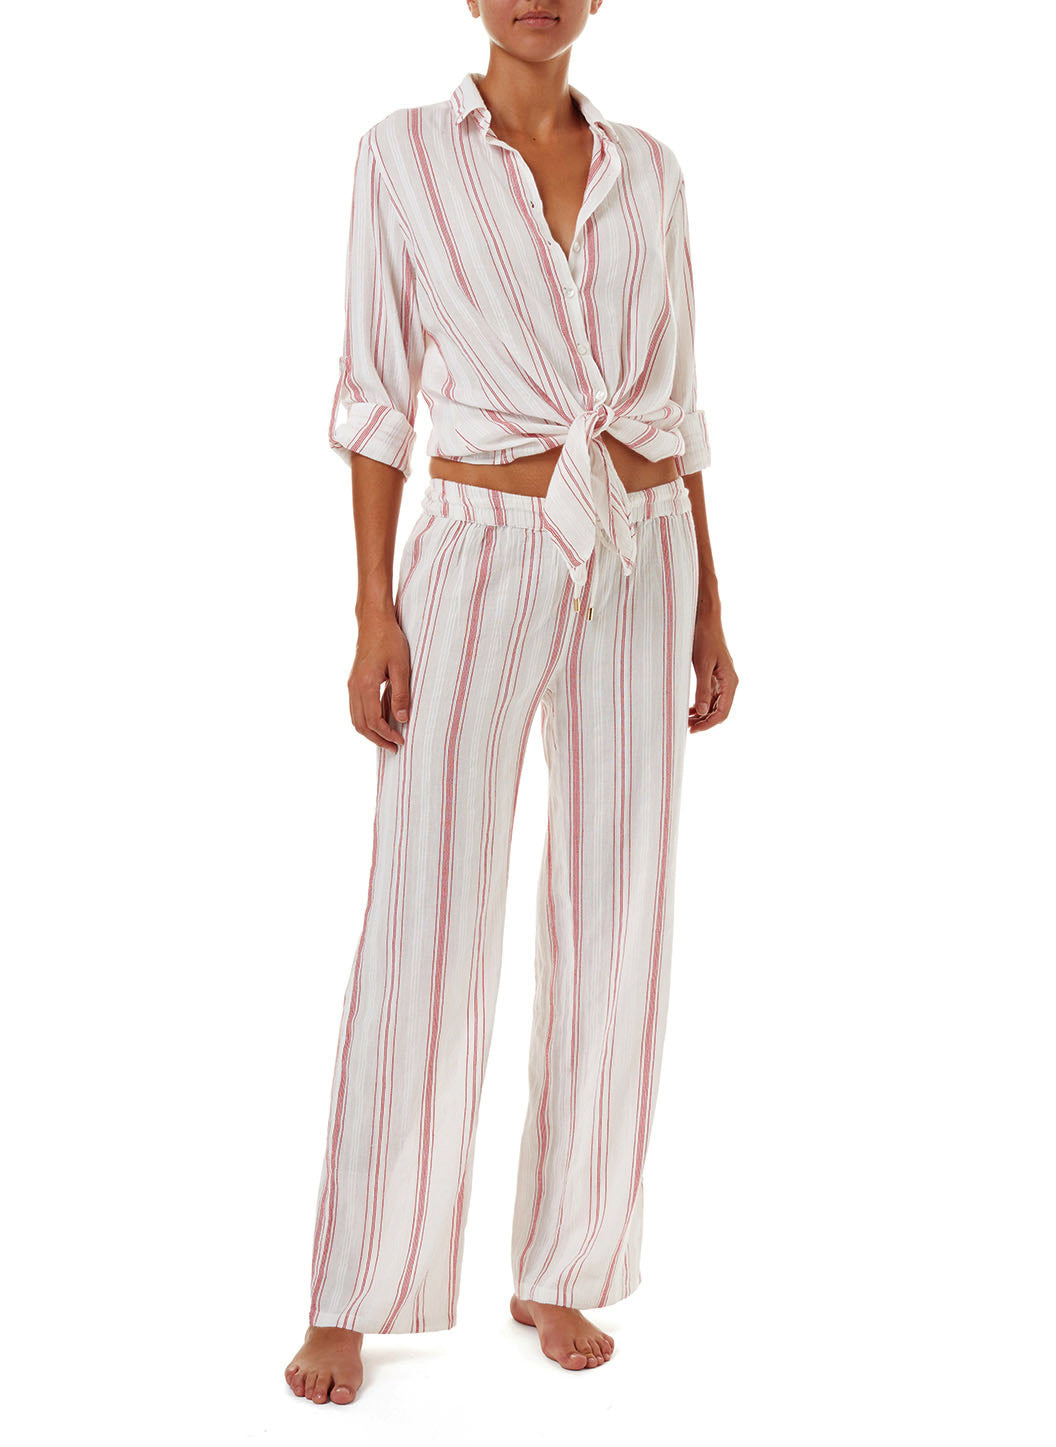 Krissy Red Stripe Straight Leg Trouser - Melissa Odabash Beachwear